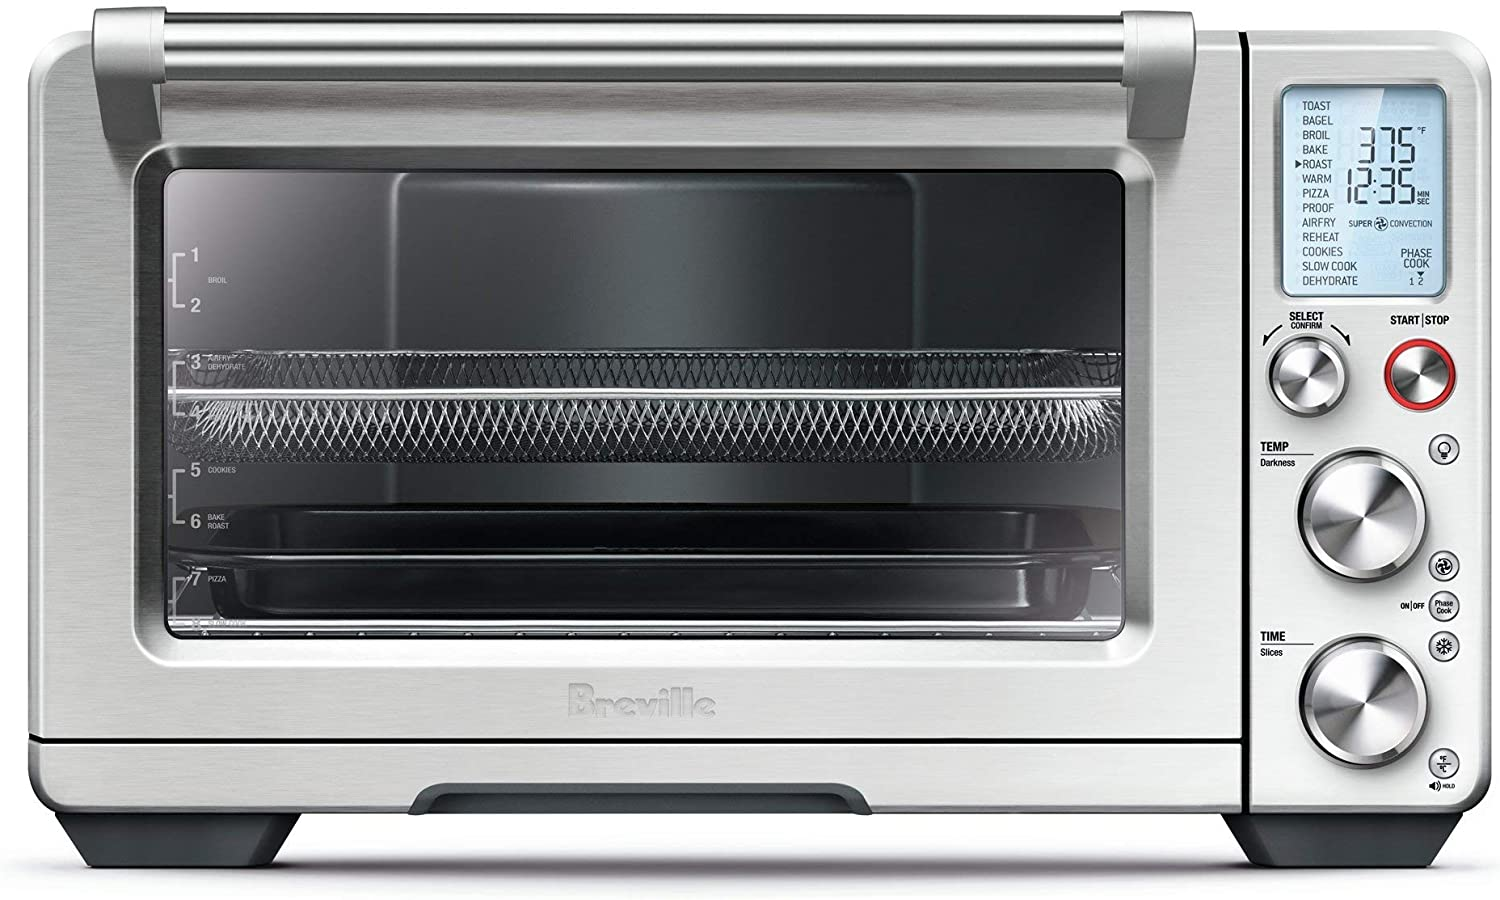 Breville Convection and Air Fry